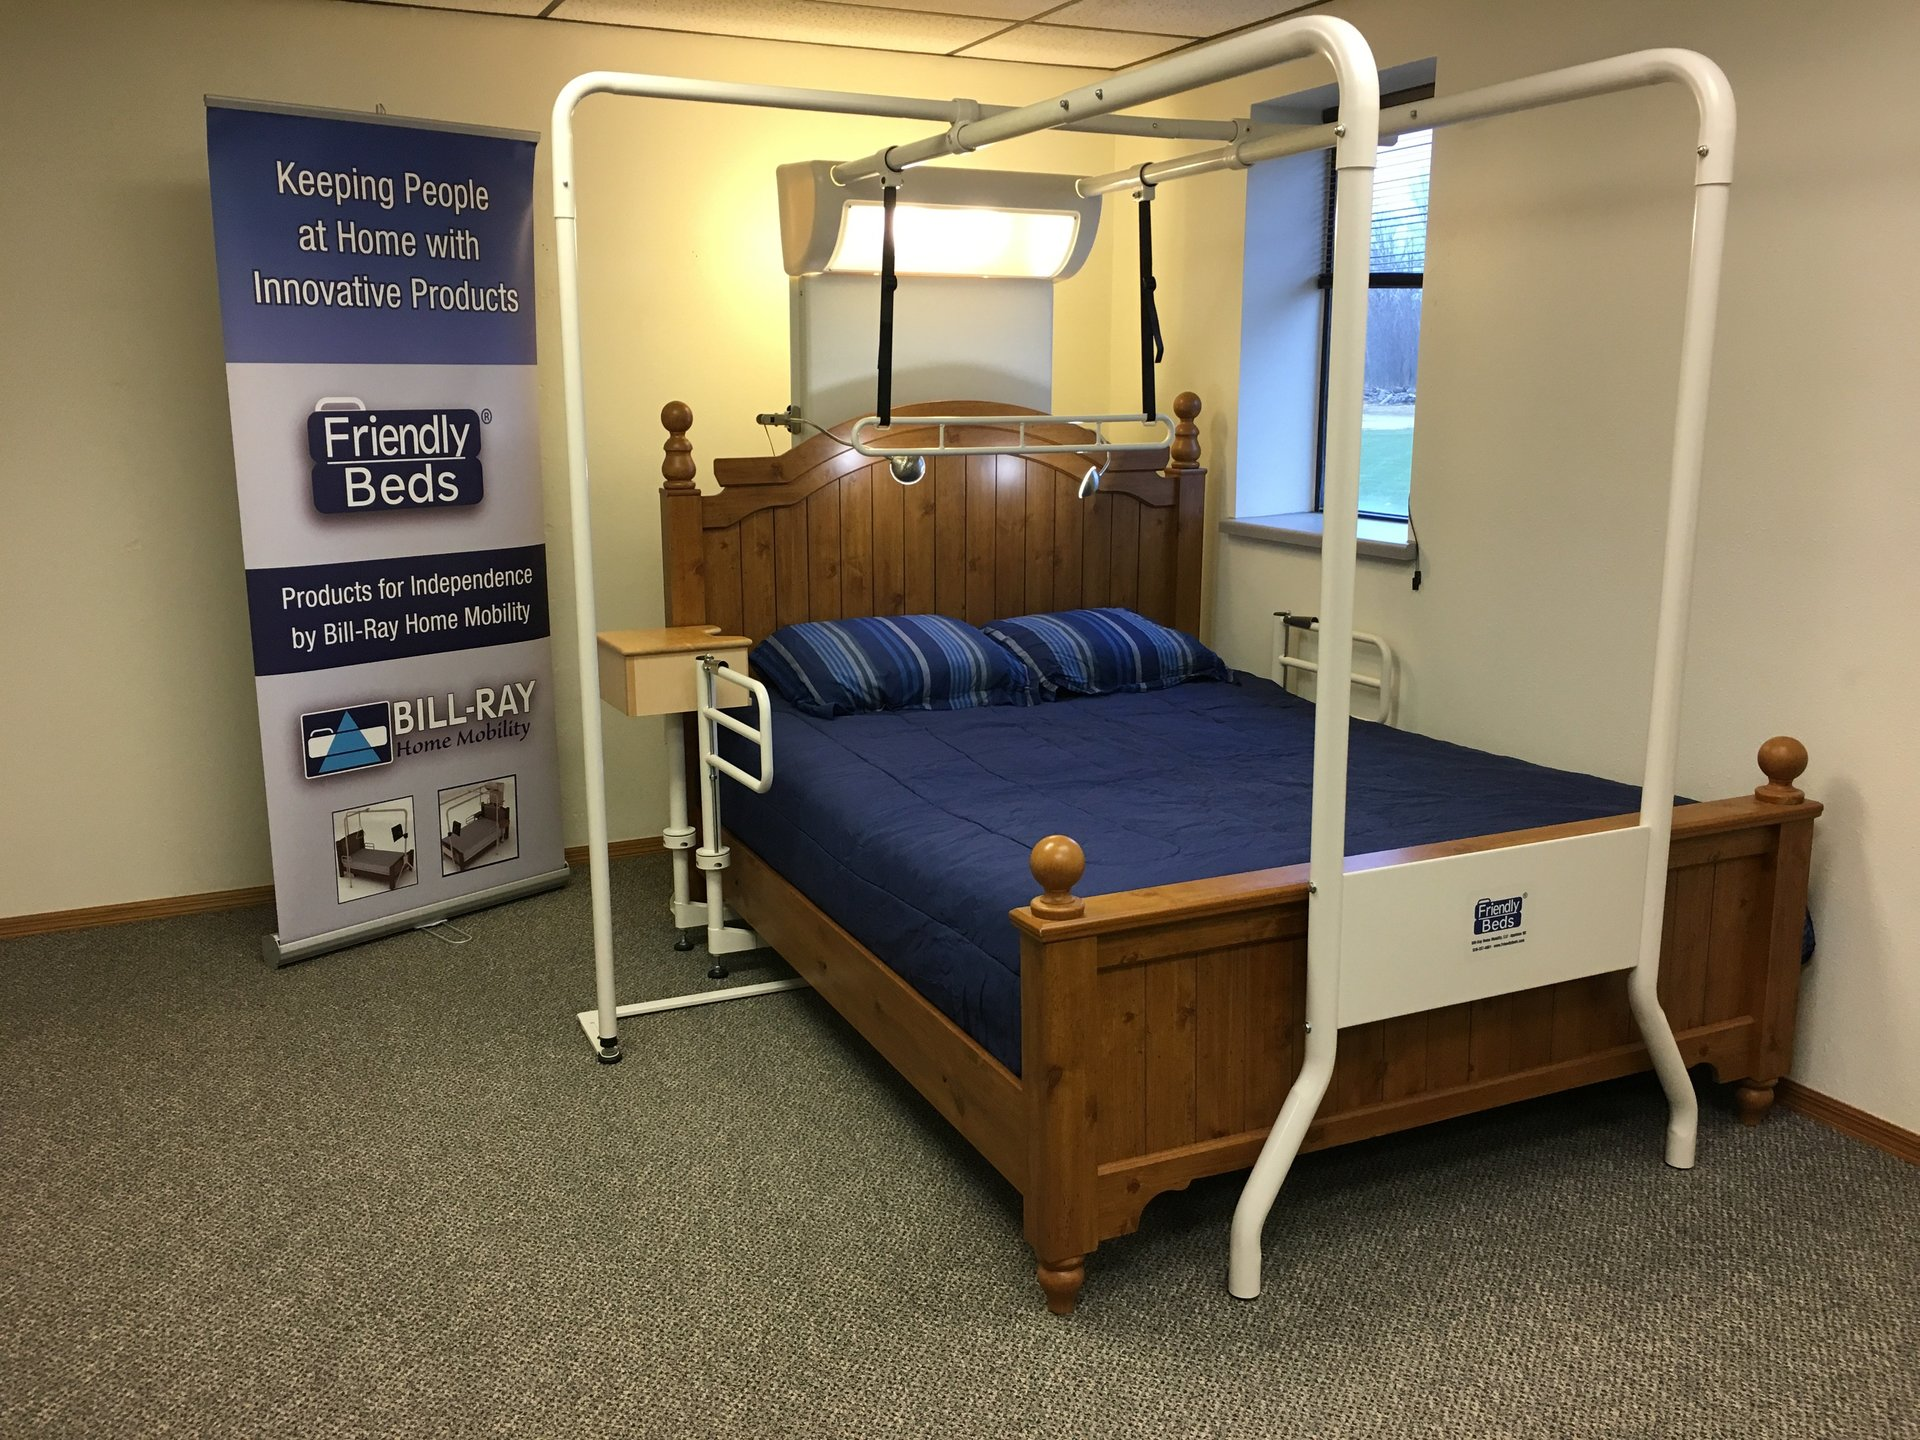 Bed Transfer System for Bed Mobility